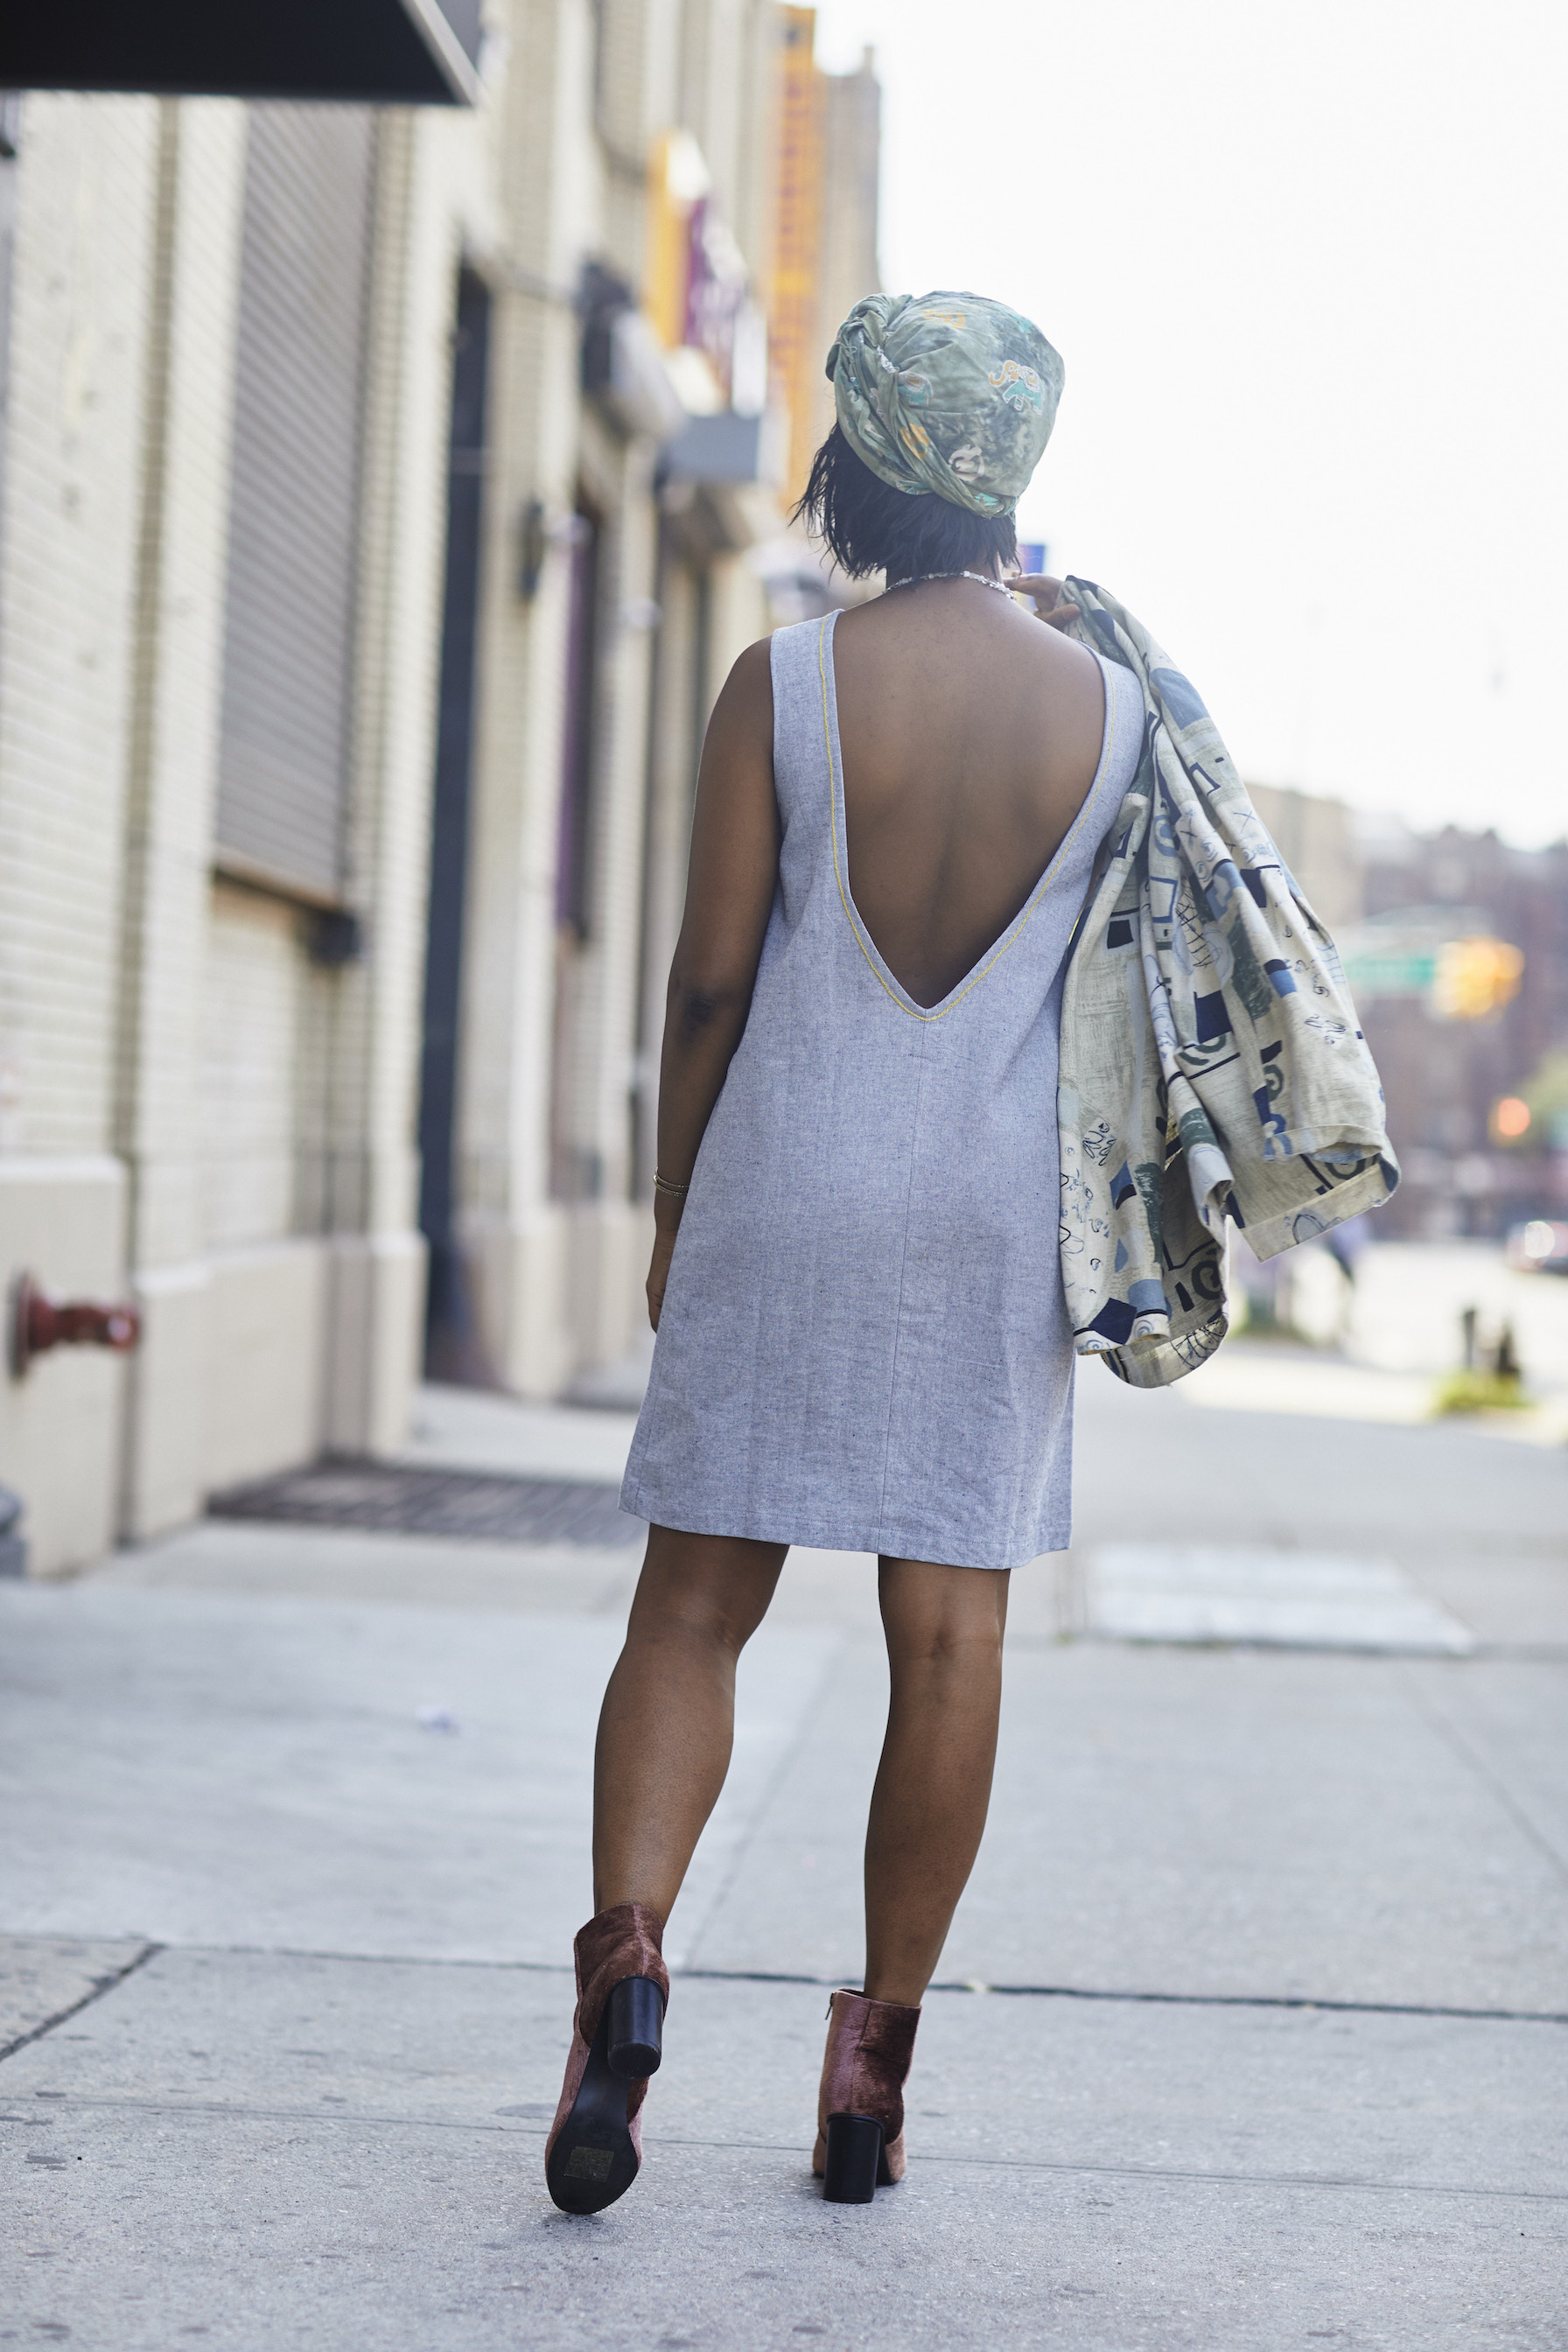 Low back shift dress // A Week Of Outfits With Dominique Drakeford, Founder Of Melanin & Sustainable Style on The Good Trade